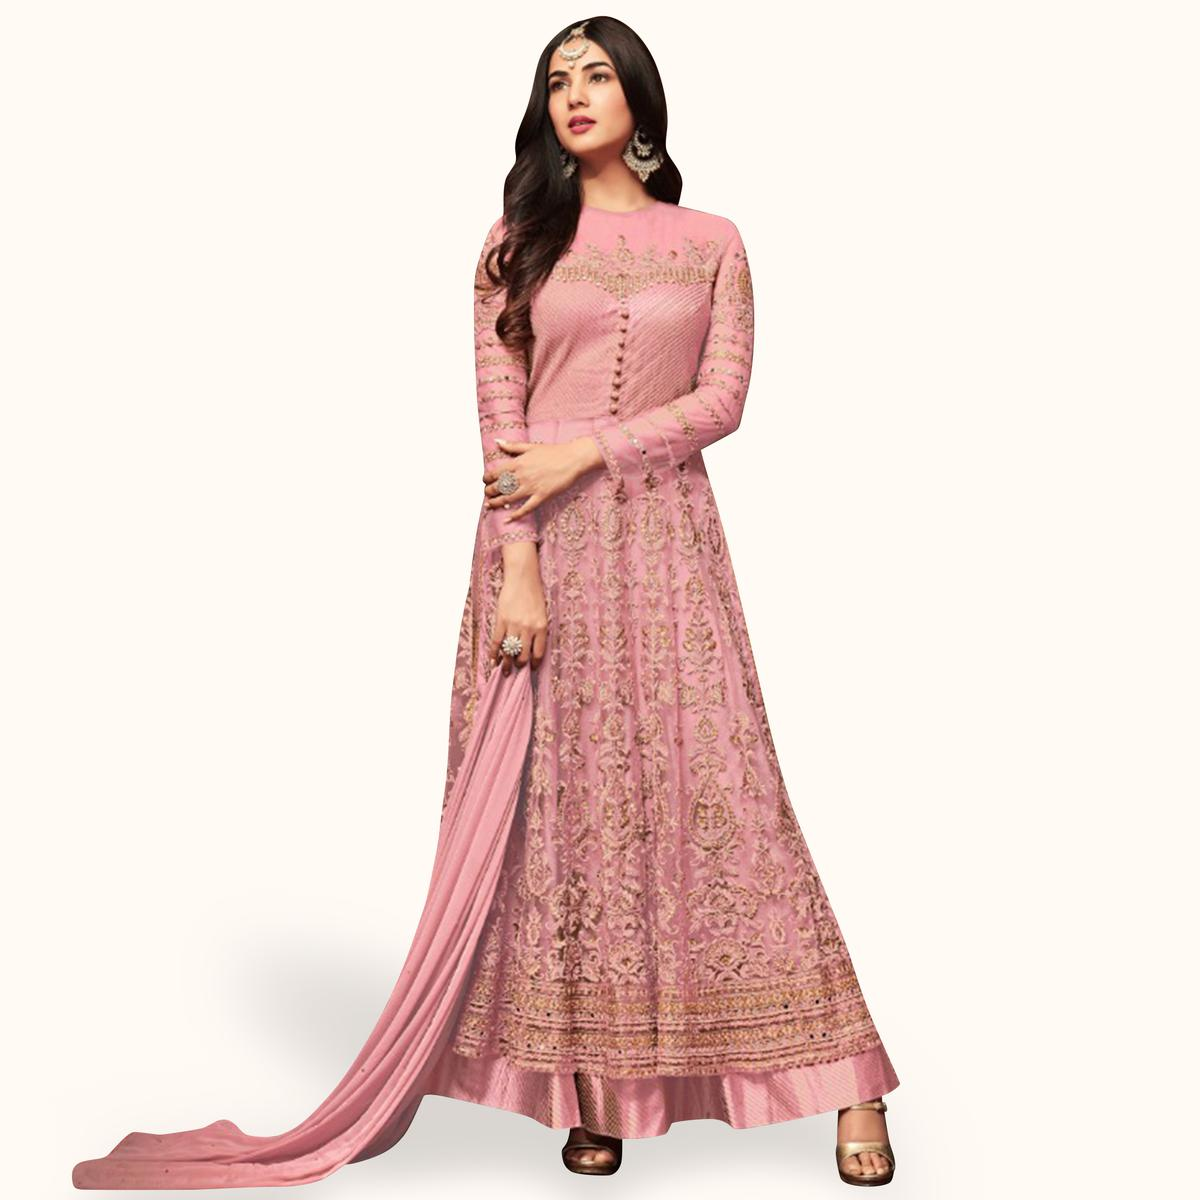 Flaunt Pink Colored Partywear Embroidered Netted Lehenga Kameez